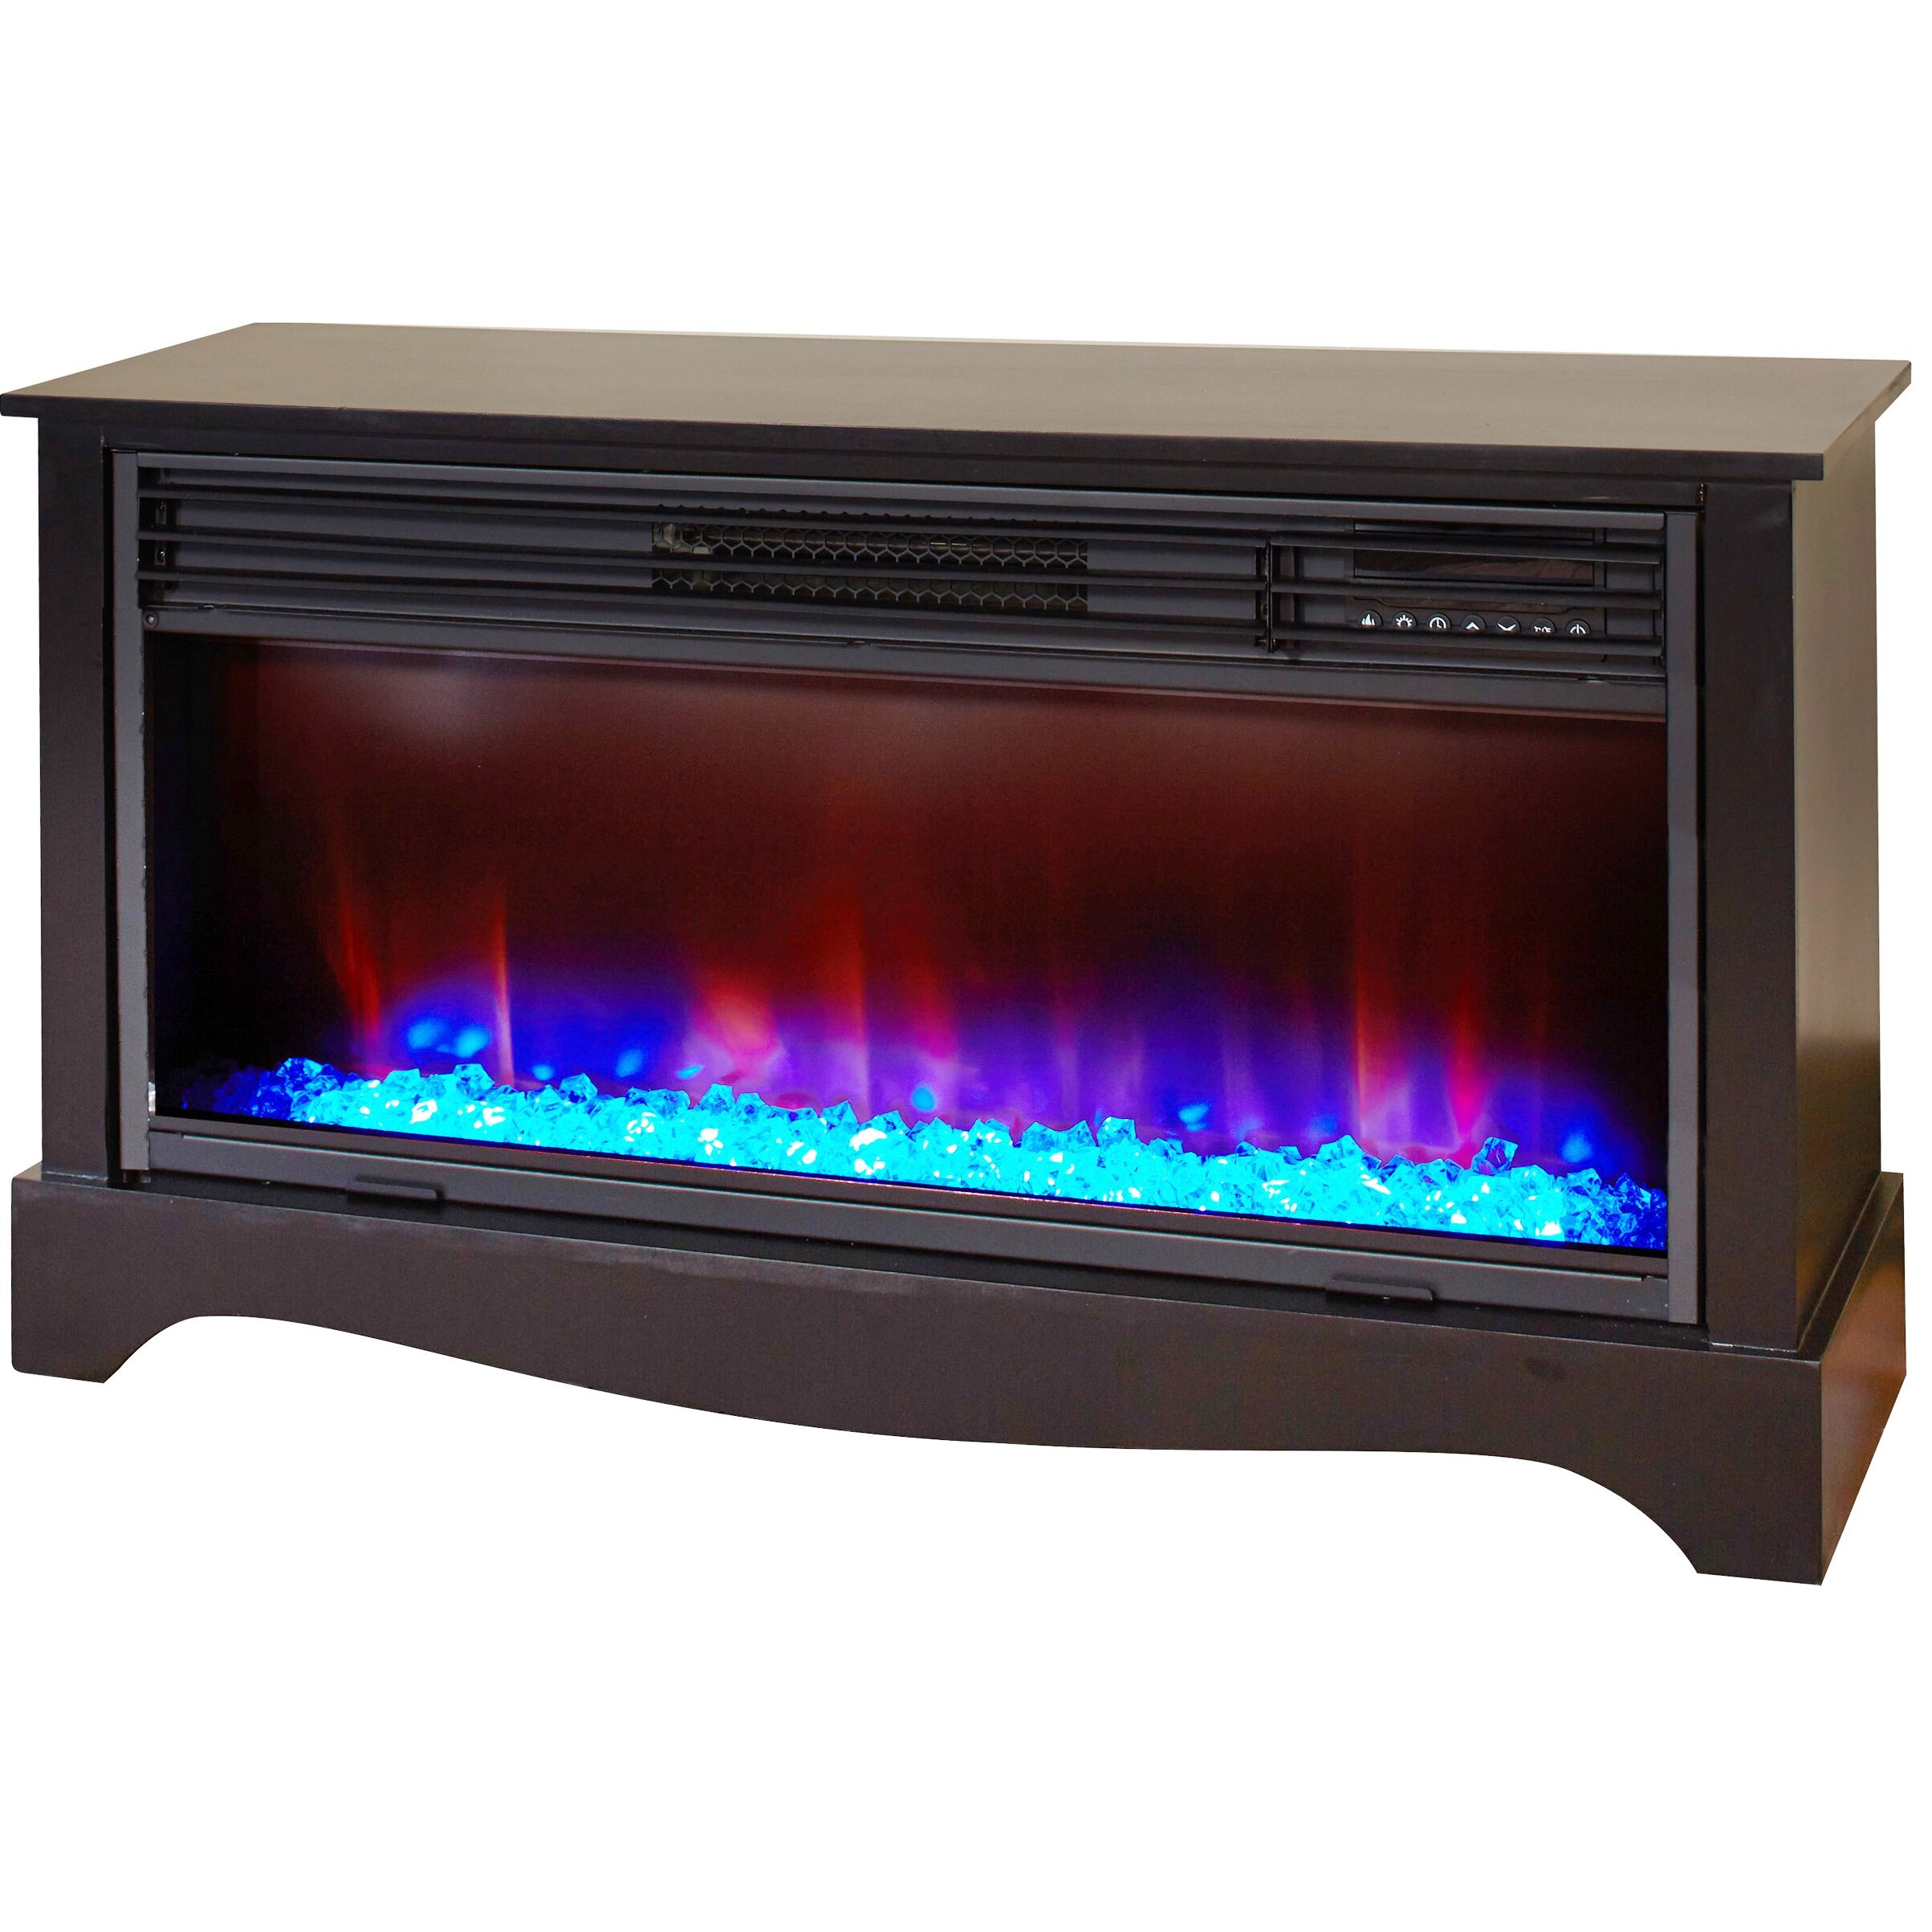 Lifesmart Lifezone Infrared Electric Fireplace Reviews Wayfair